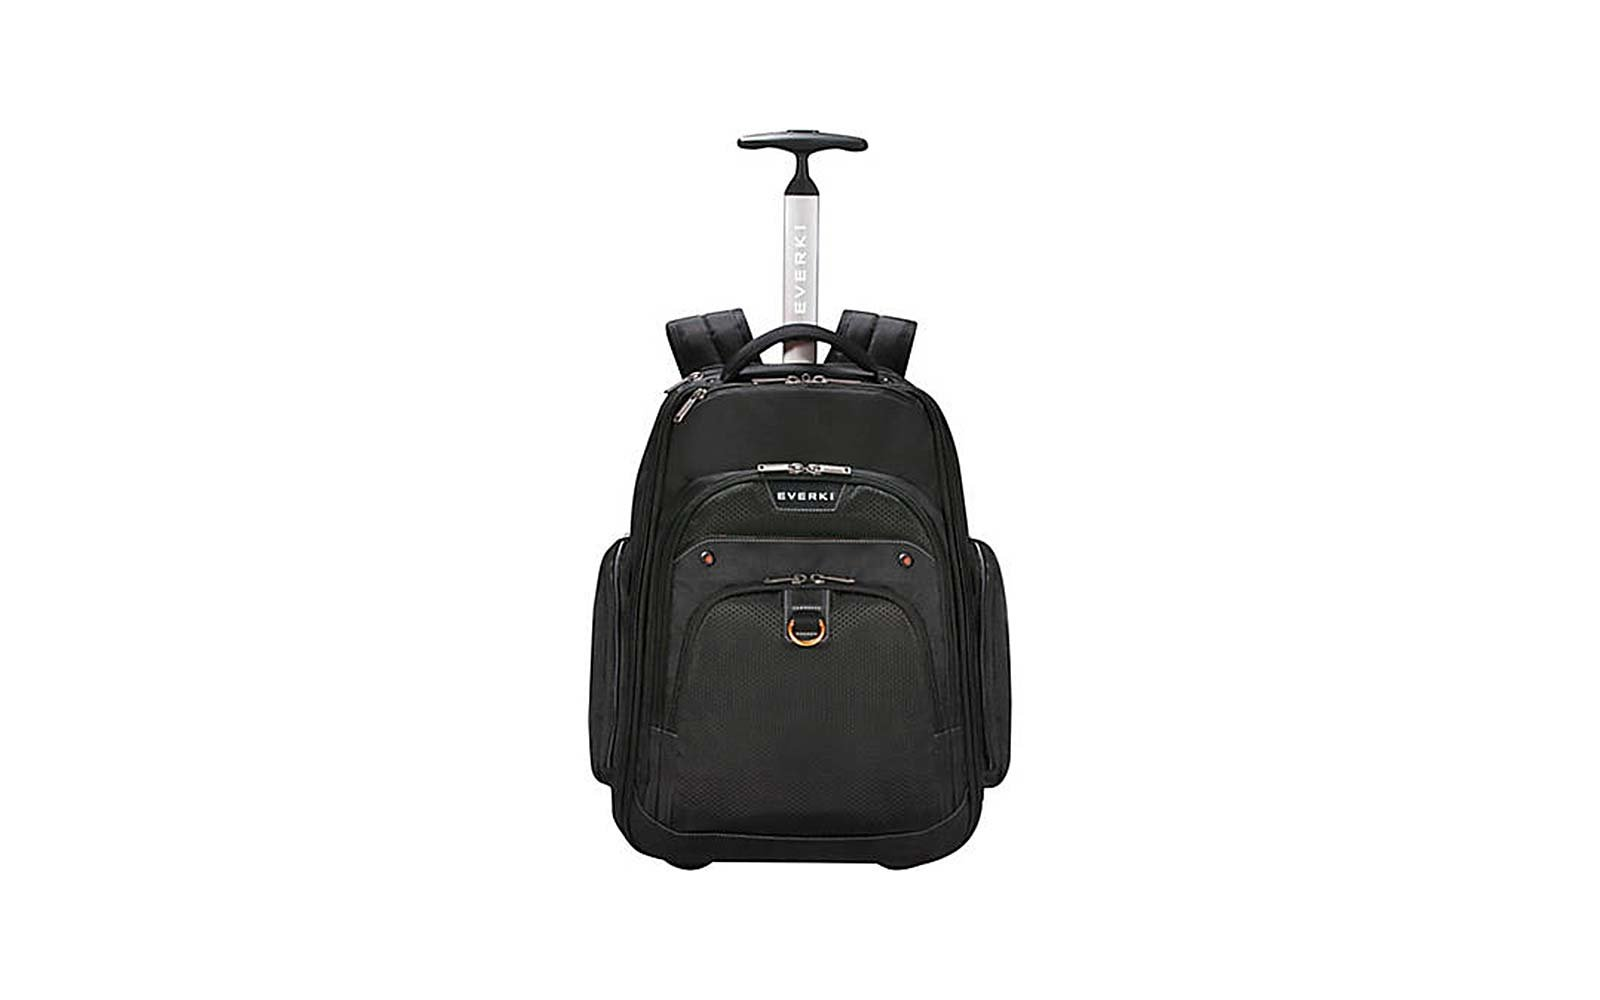 Everki Atlas Laptop Backpack Bag Style